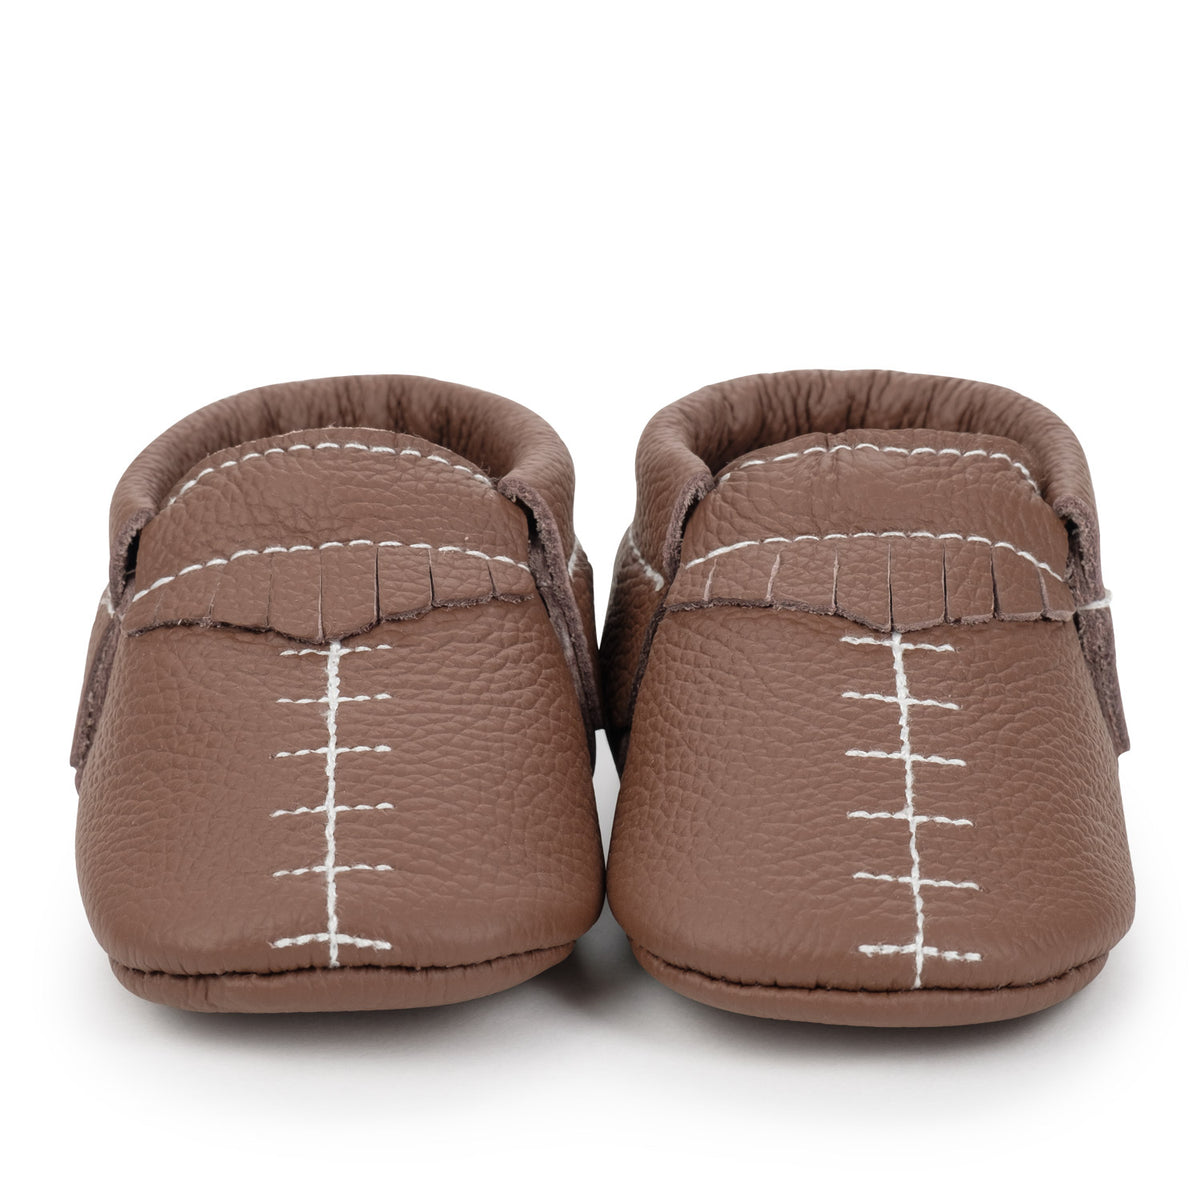 Touchdown Baby Moccasins